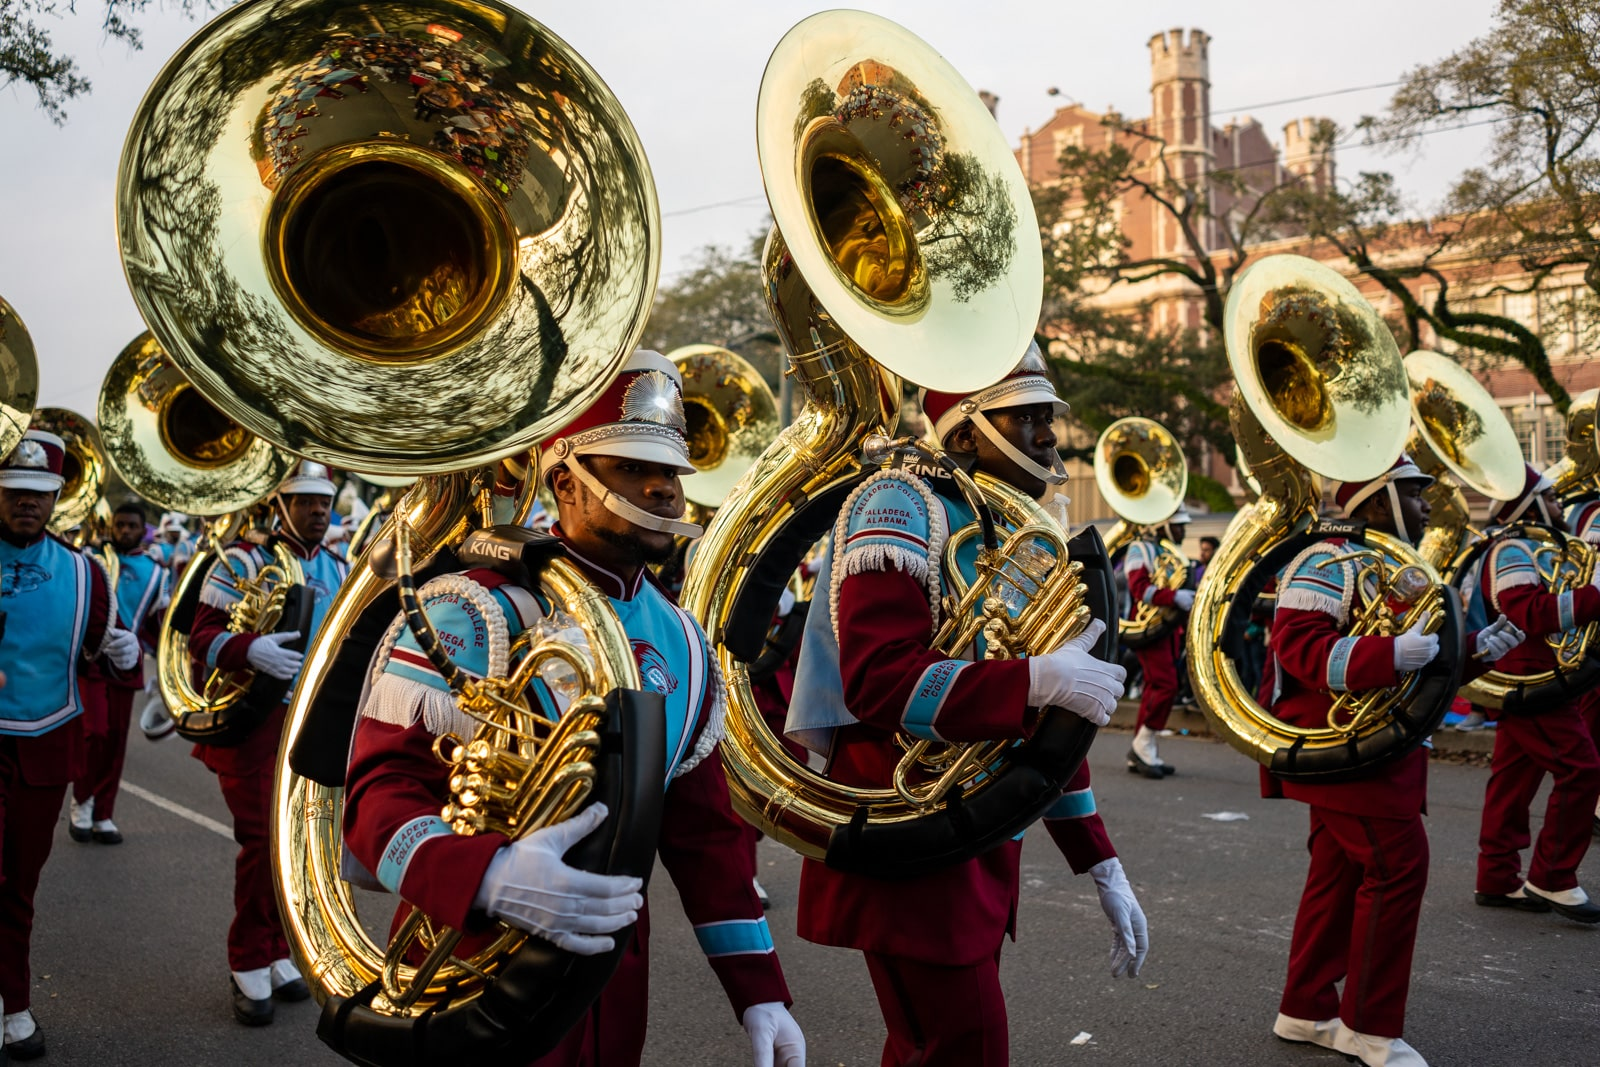 Marching band on the streets of New Orleans during the Endymion parade during Mardi Gras